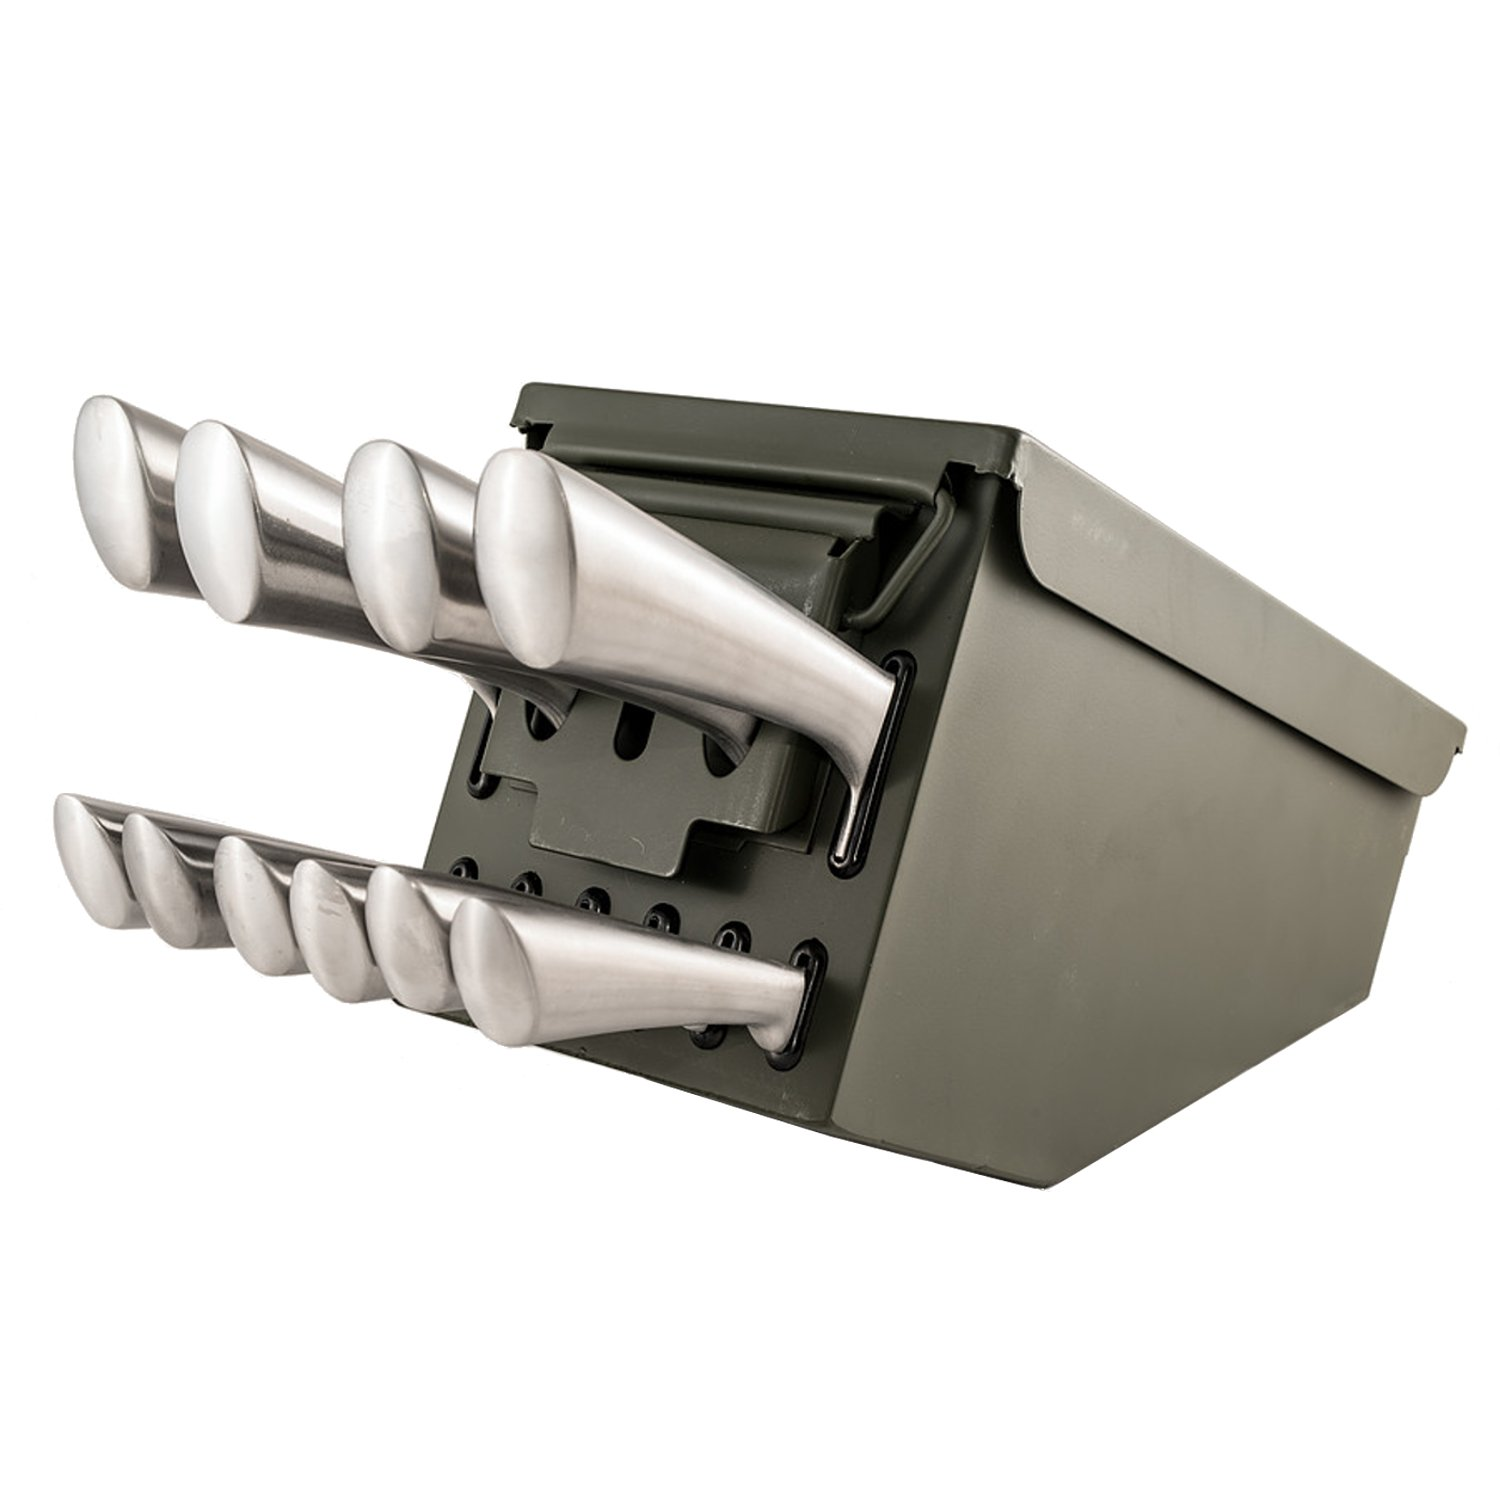 Tactical Overlord 10 Piece Ammo Can Box Knife Block Cultery Set Utility Storage Organizer